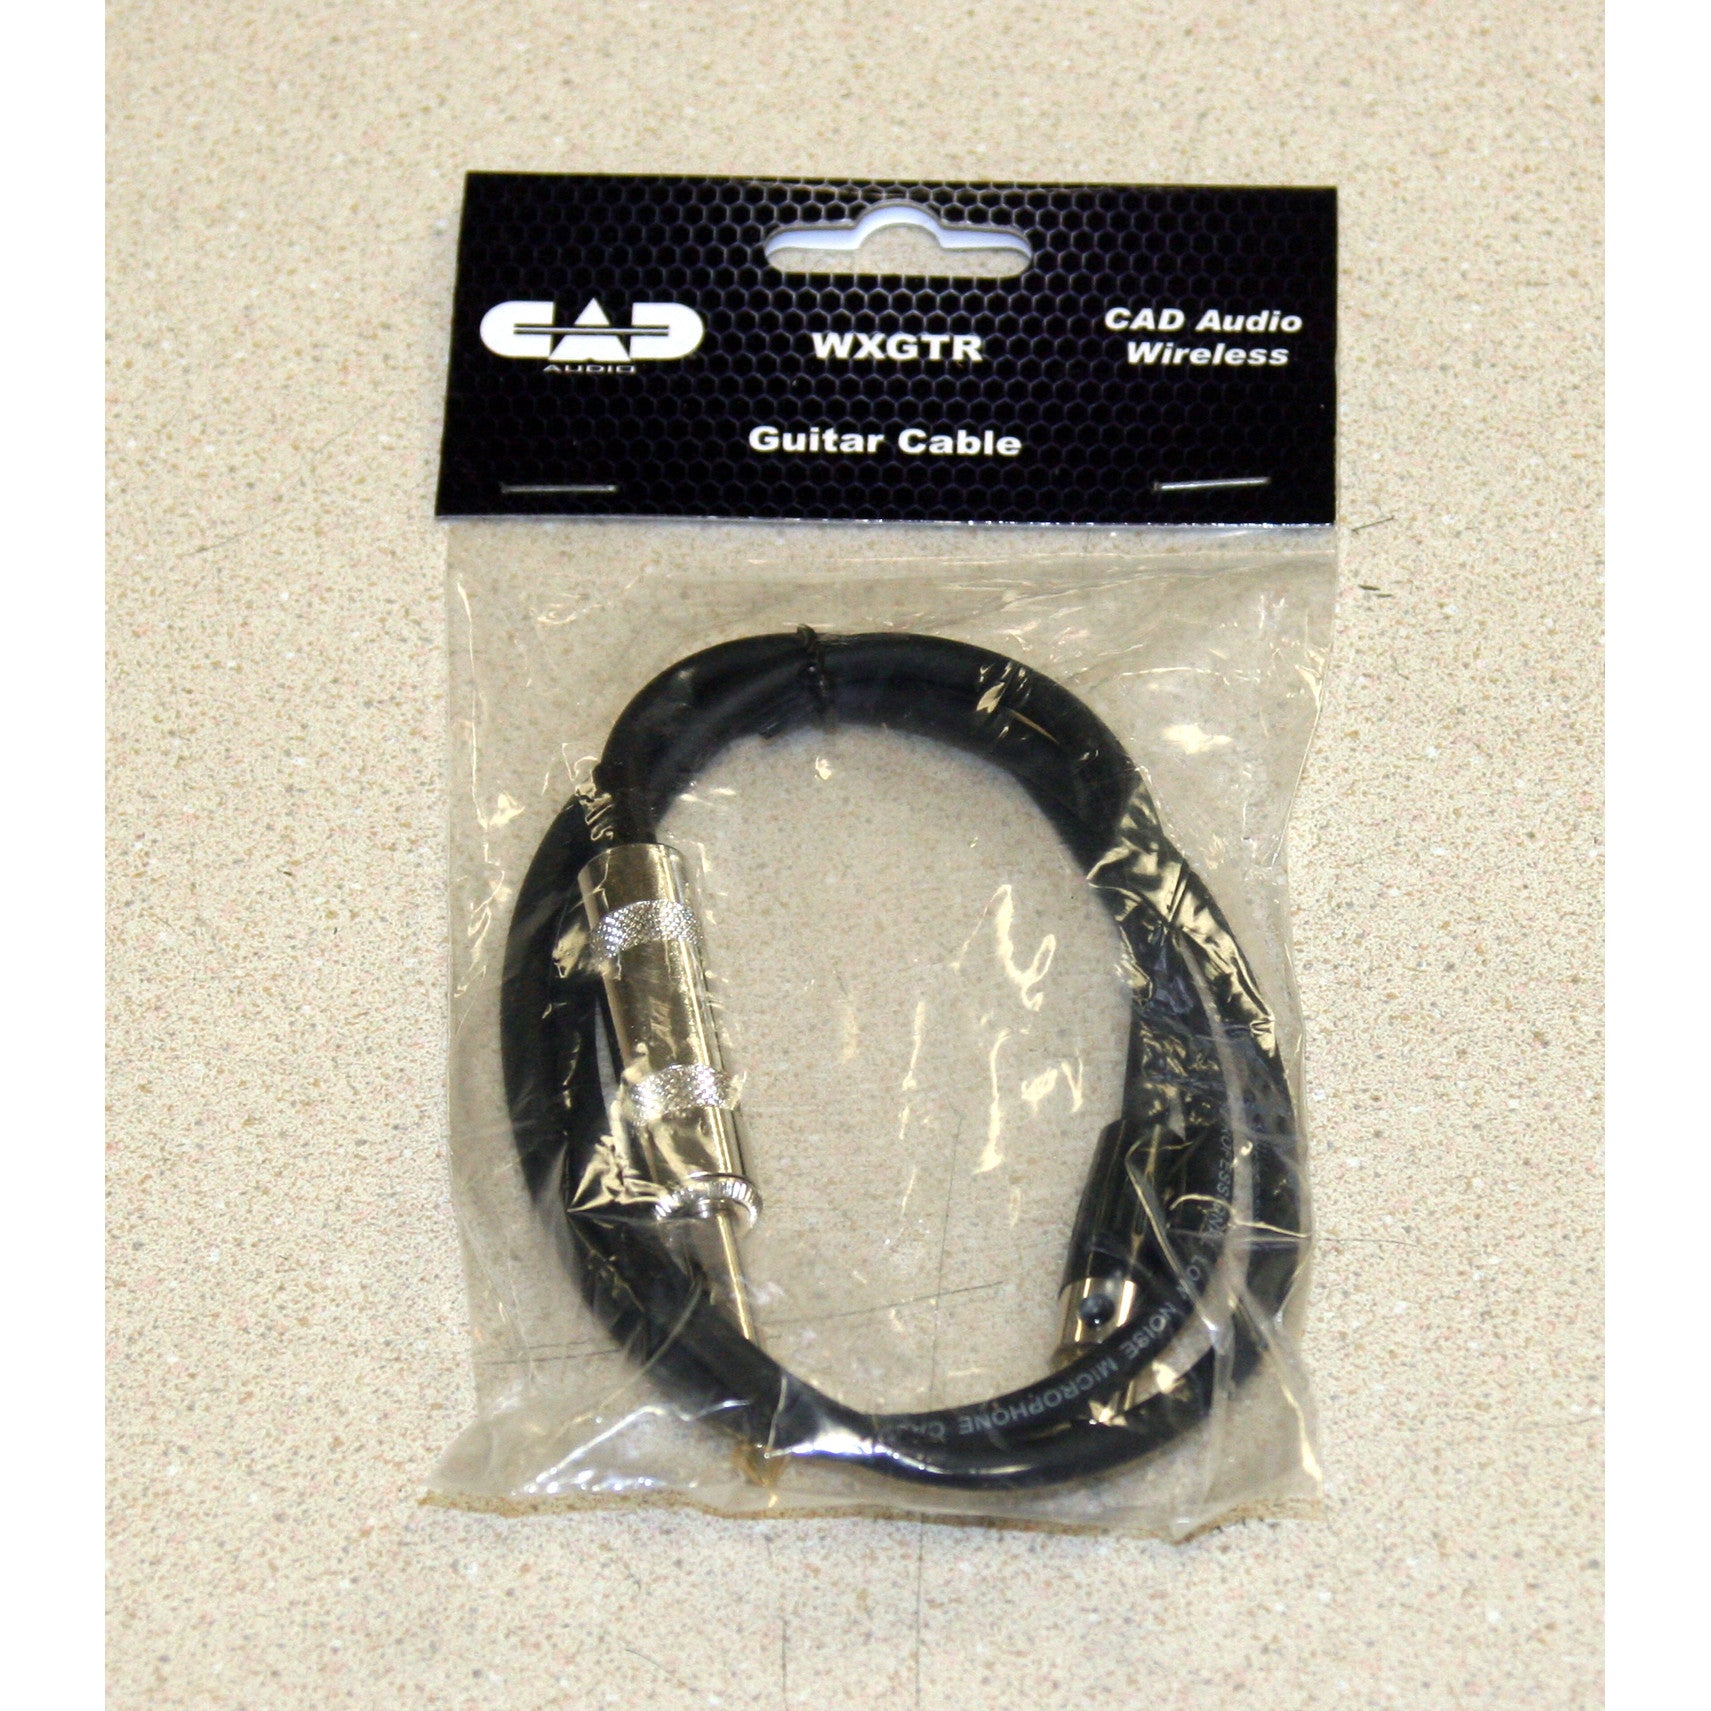 CAD Guitar Cable for Wireless Body Packs